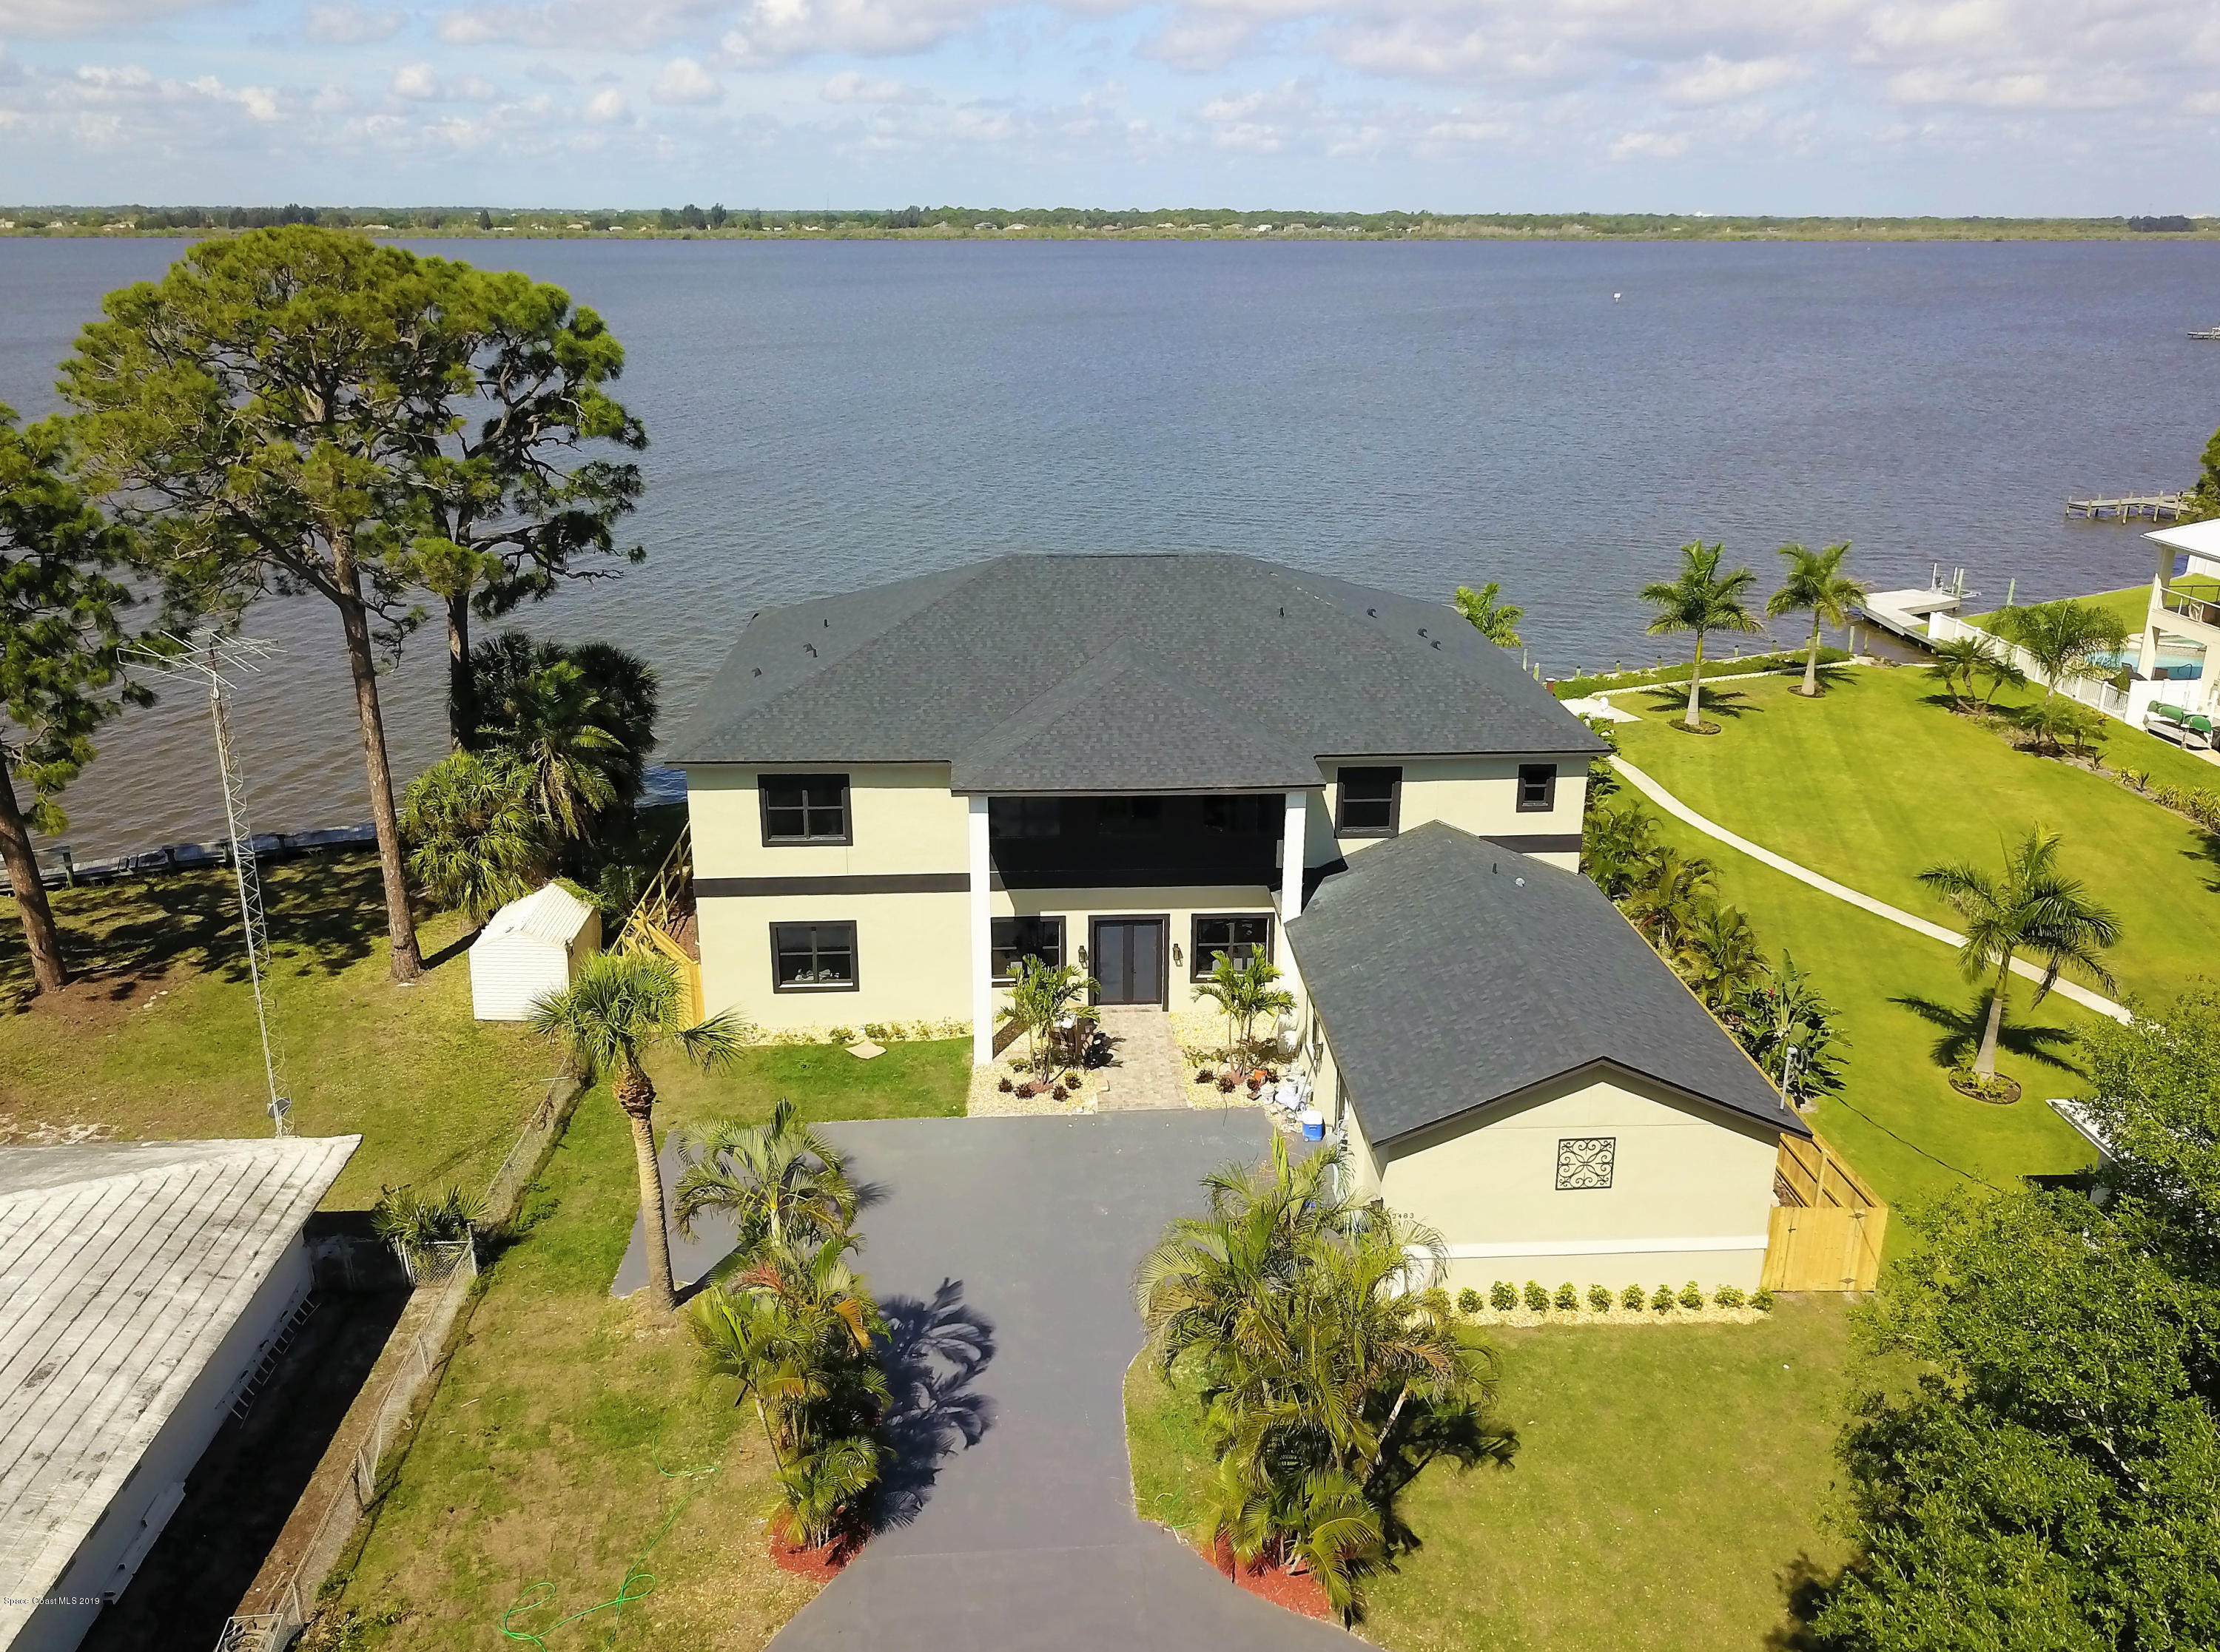 Single Family Homes for Sale at 2483 Newfound Harbor Merritt Island, Florida 32952 United States